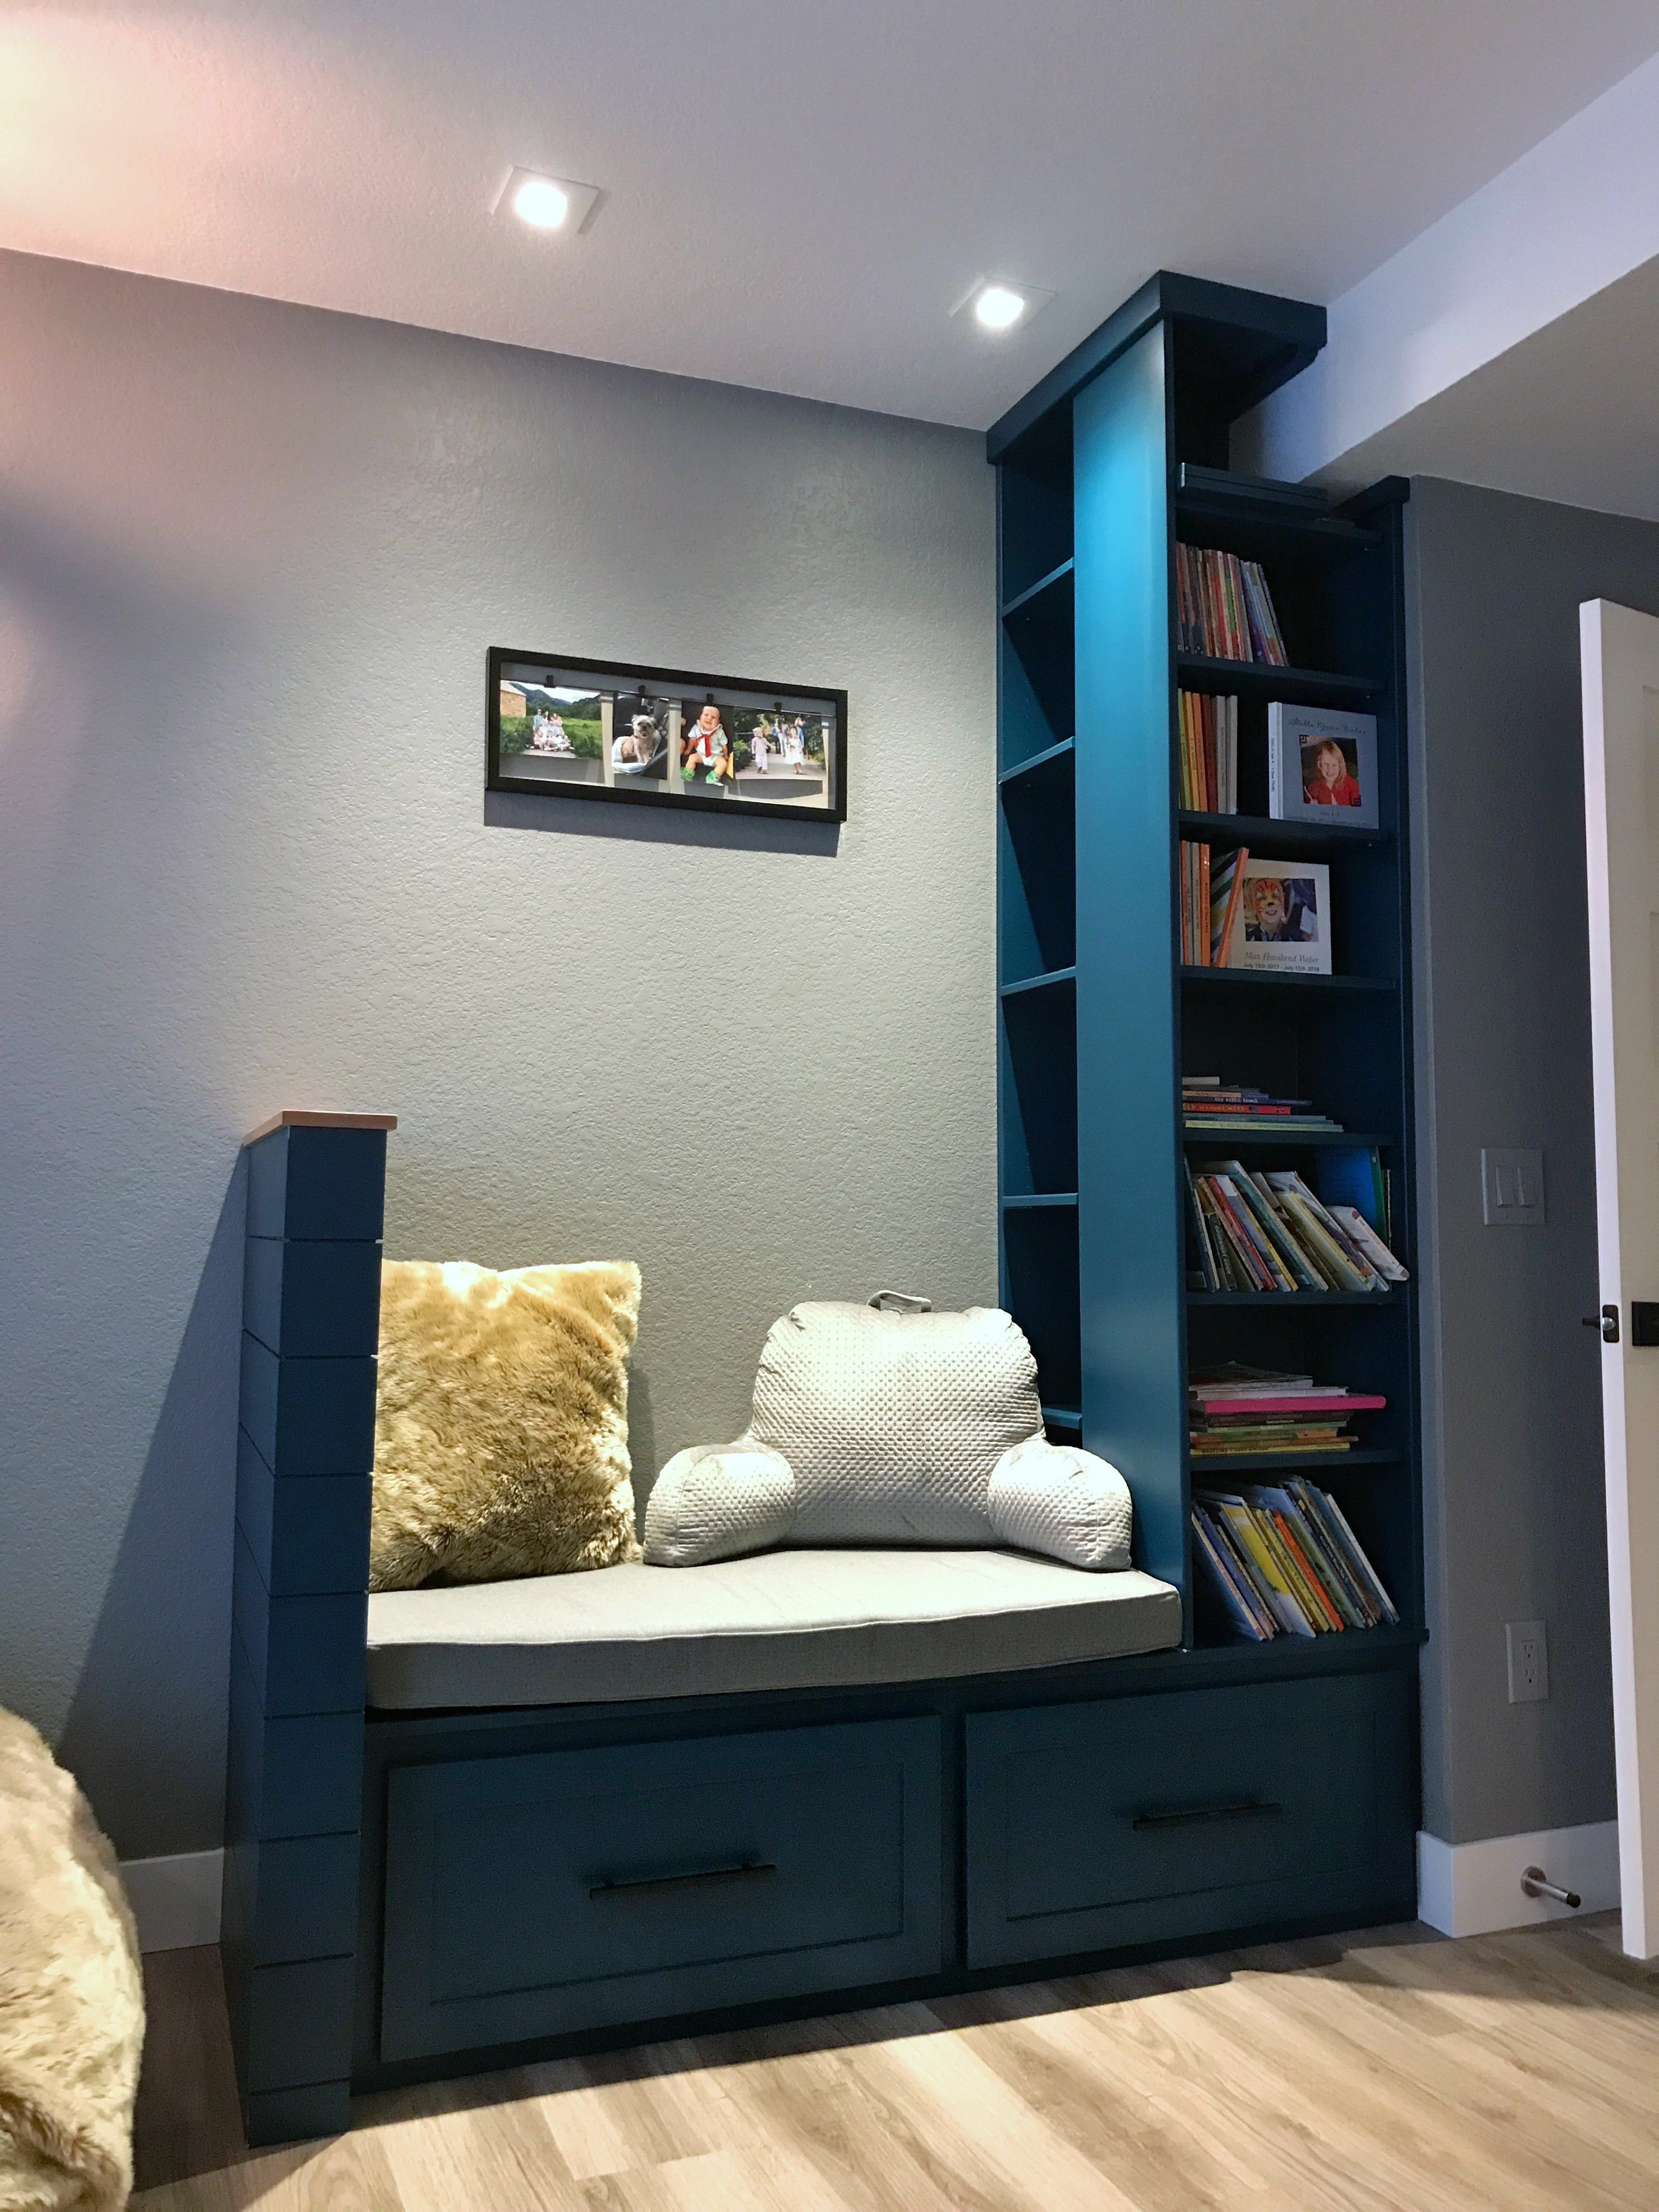 Reading nook + Bookshelves